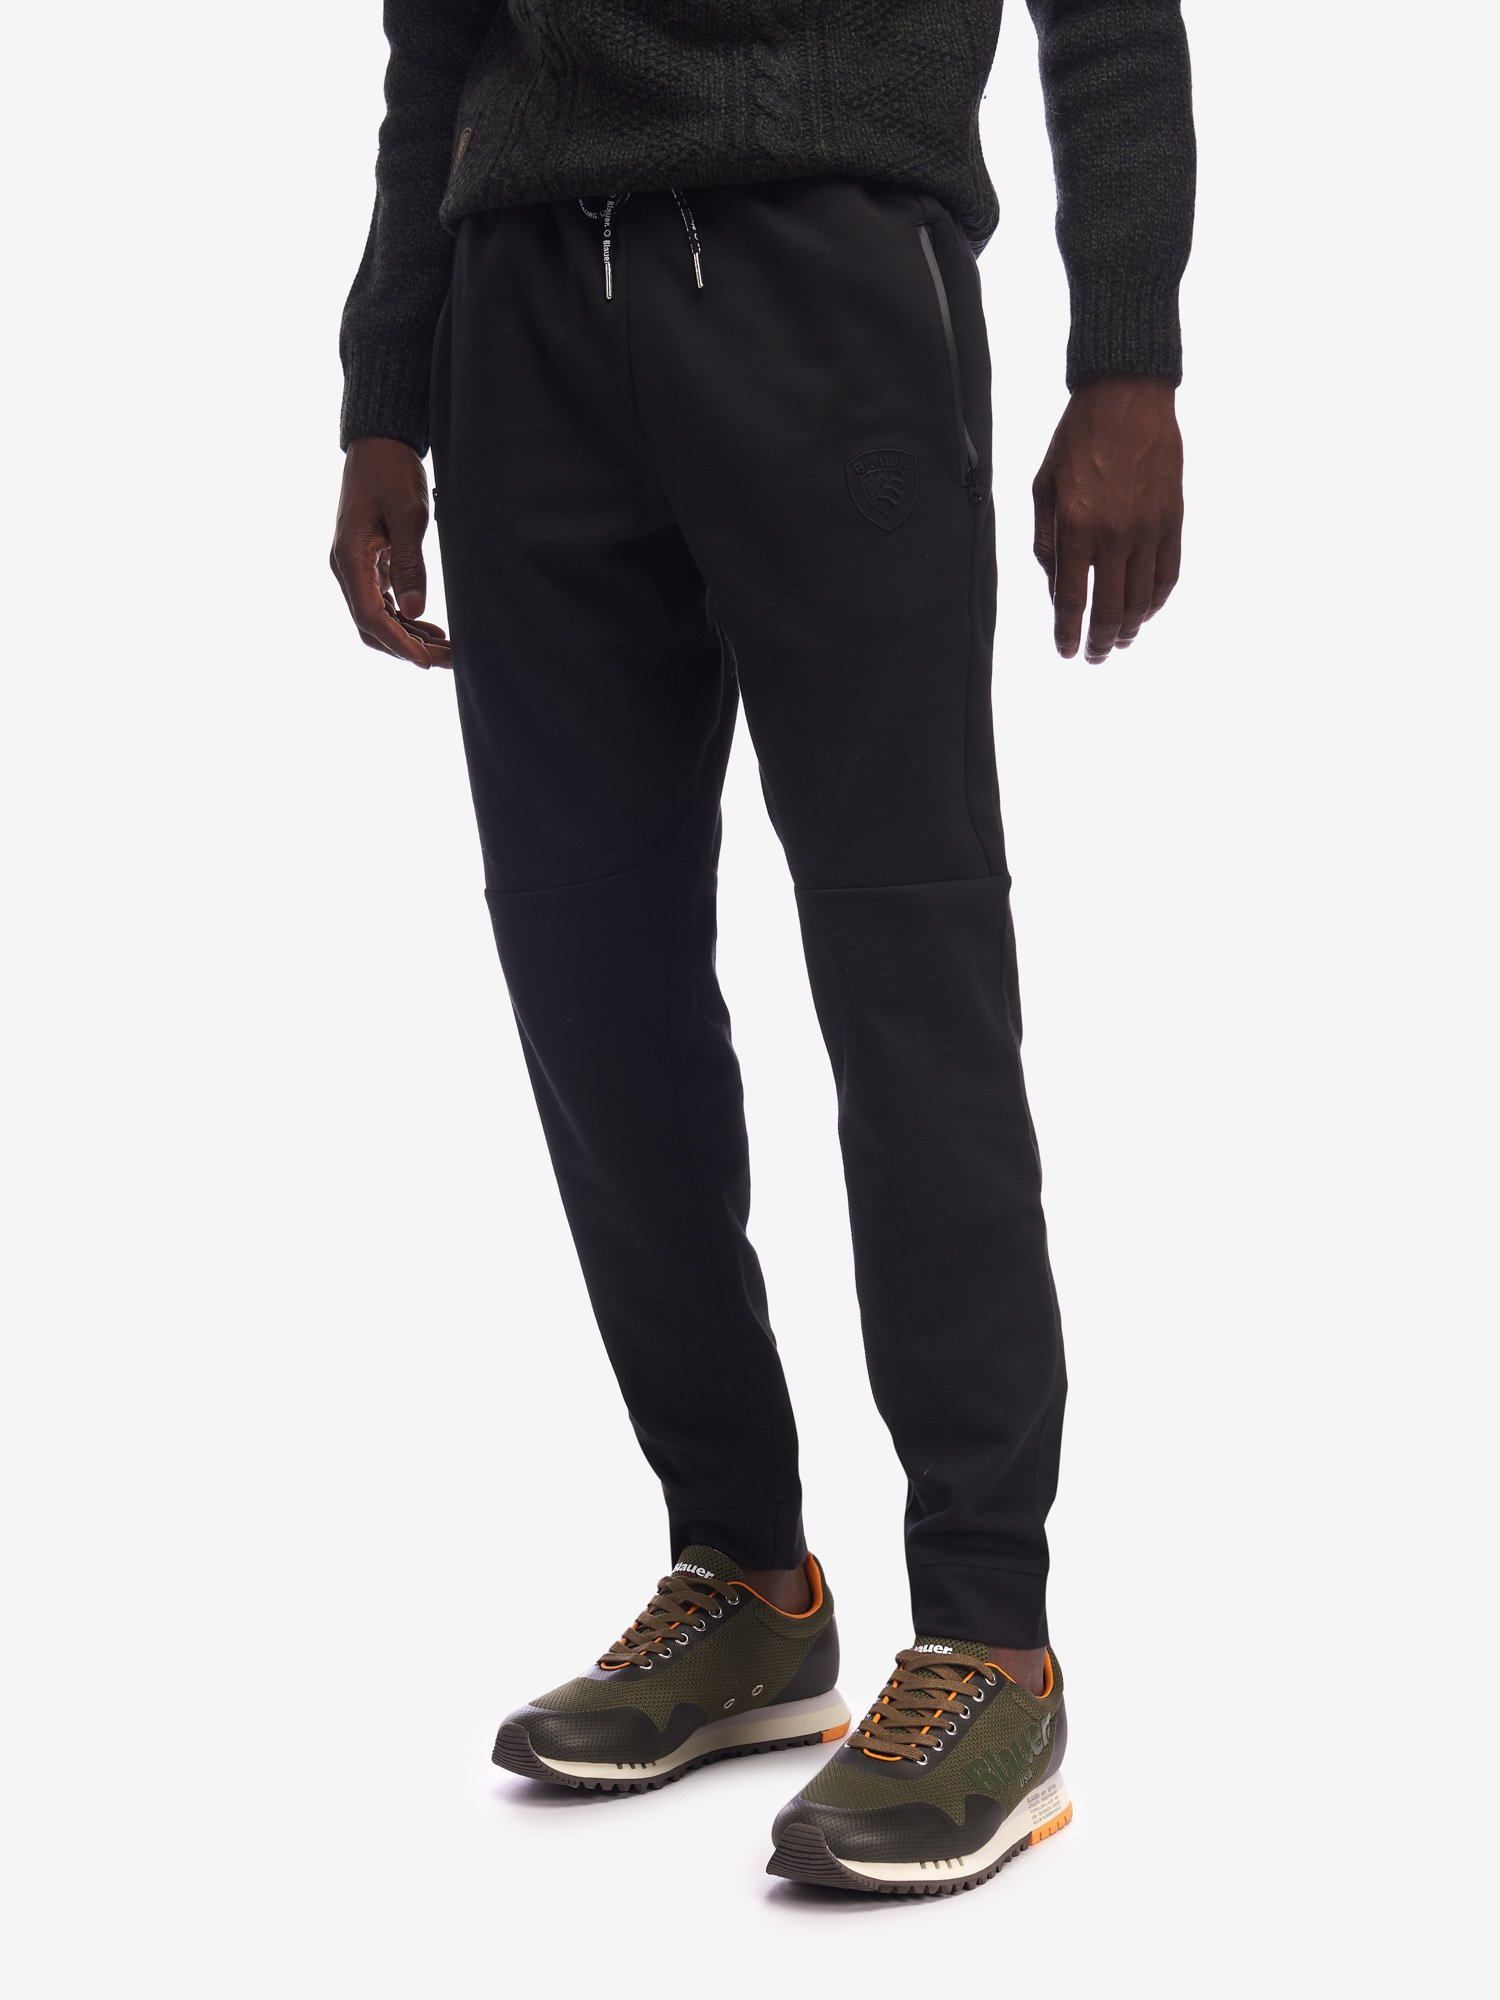 COTTON-BLEND SWEATPANTS WITH ZIP POCKETS - Blauer